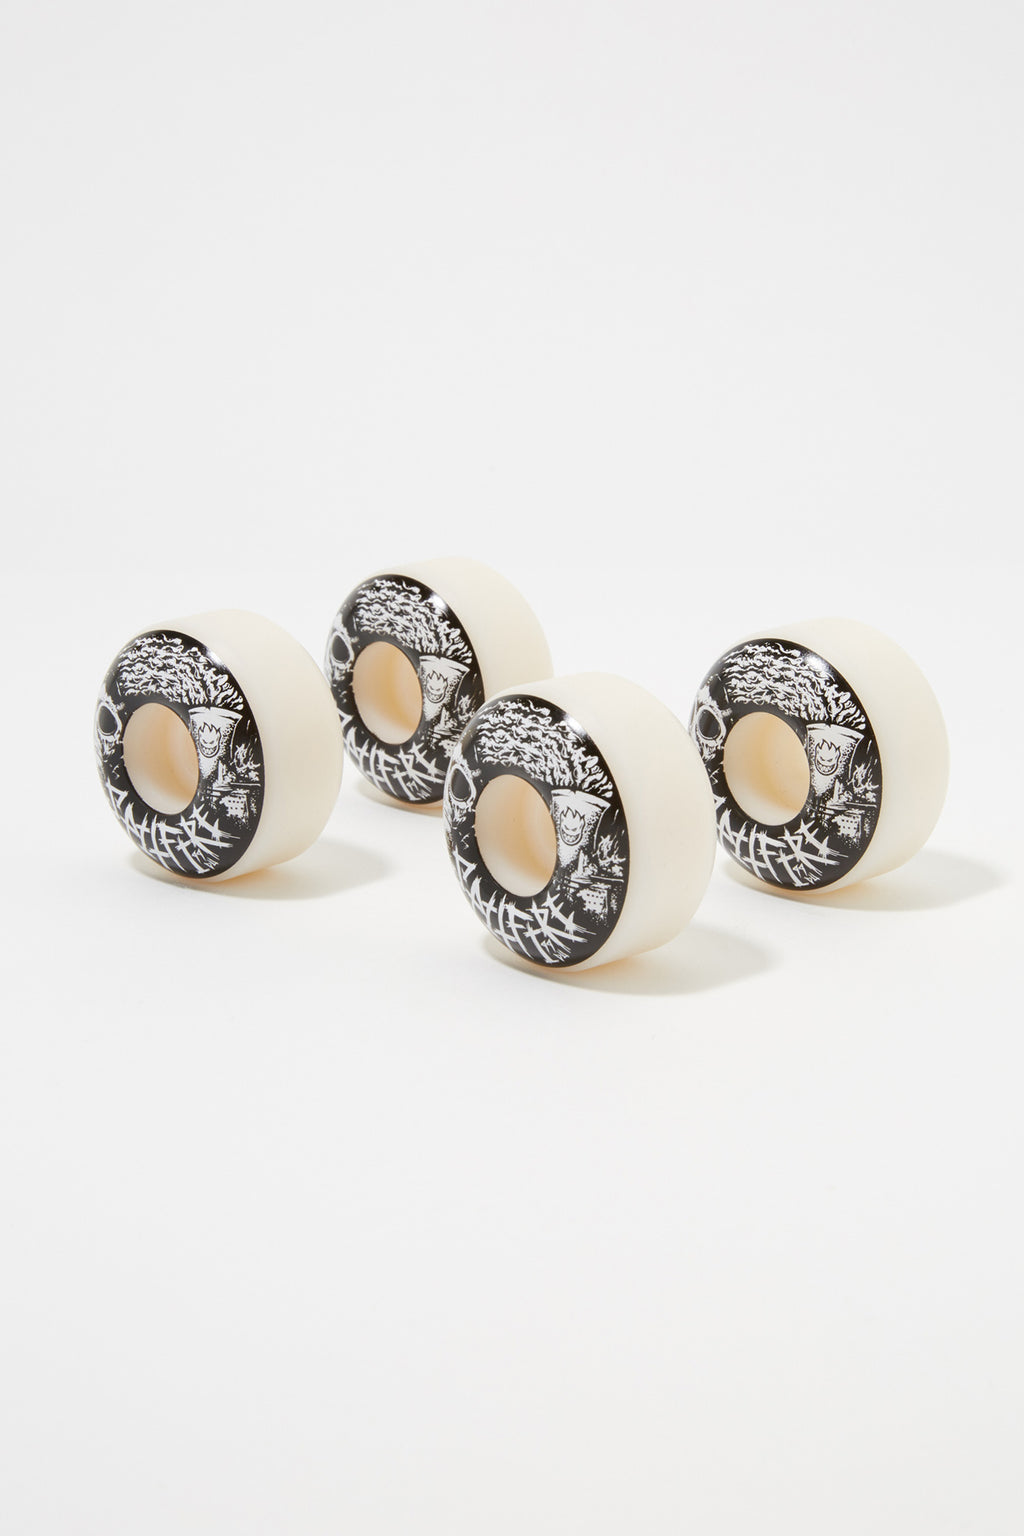 Spitfire Spitcrust 99D 55mm Wheels